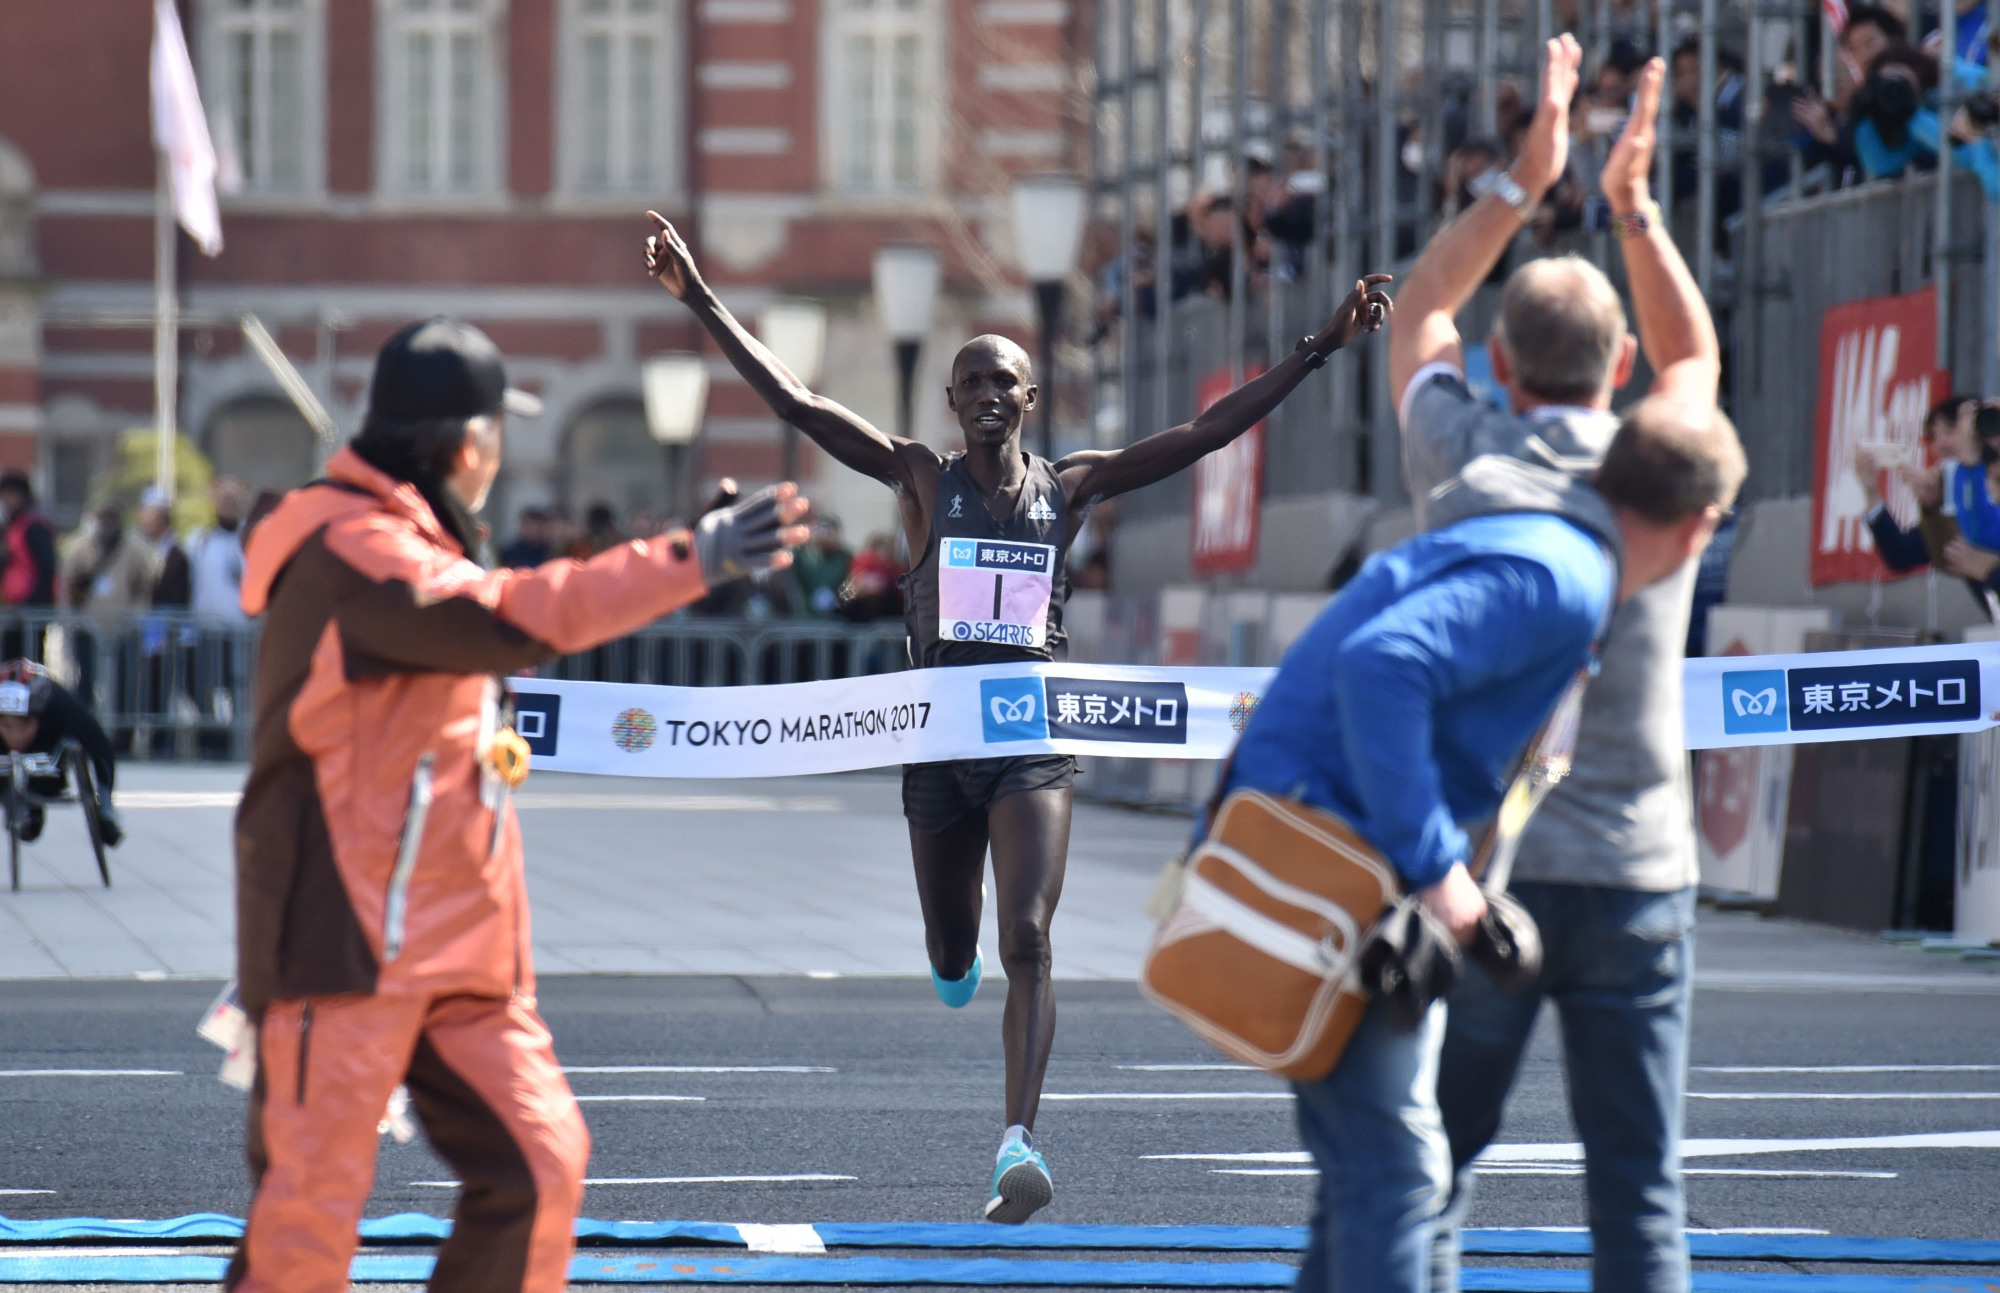 Kenya's Wilson Kipsang approaches the finish line for the Tokyo Marathon in front of Tokyo Station on Sunday. | AFP-JIJI